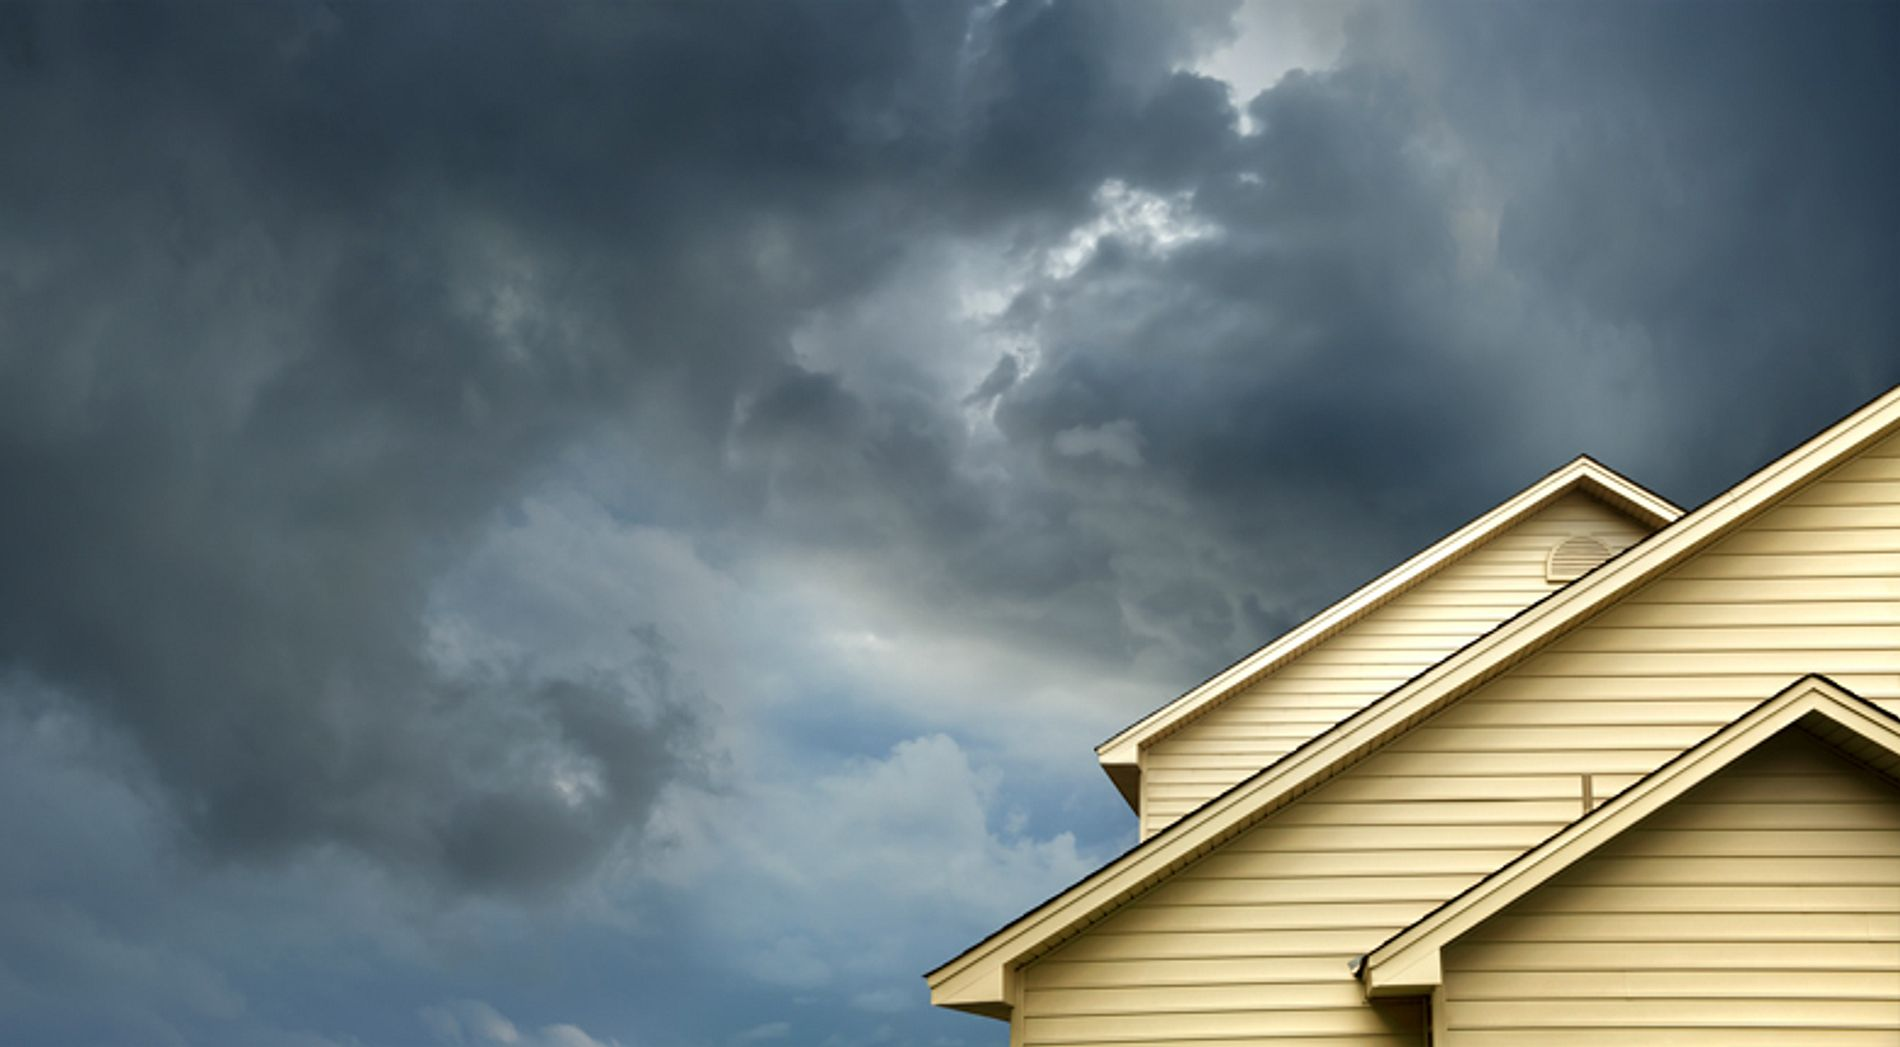 Cloudy sky over a home